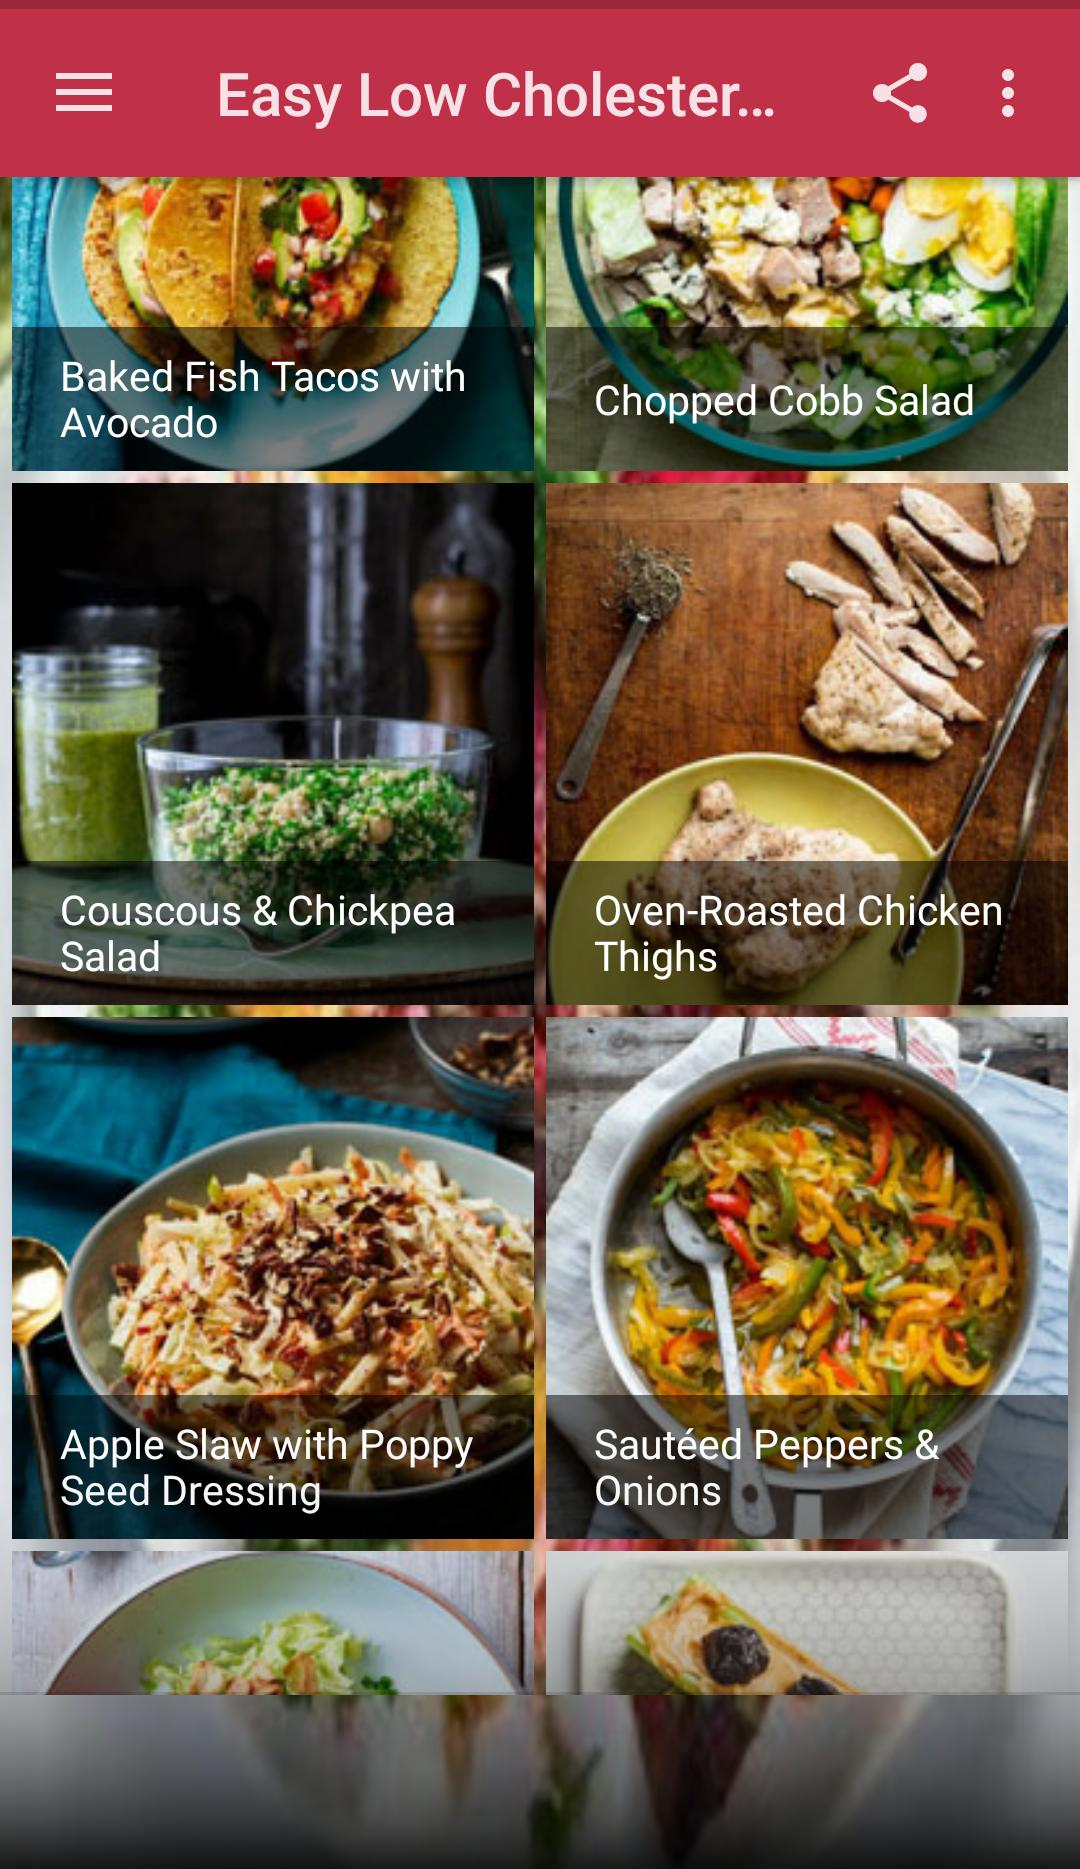 Easy Low Cholesterol Recipes For Android Apk Download